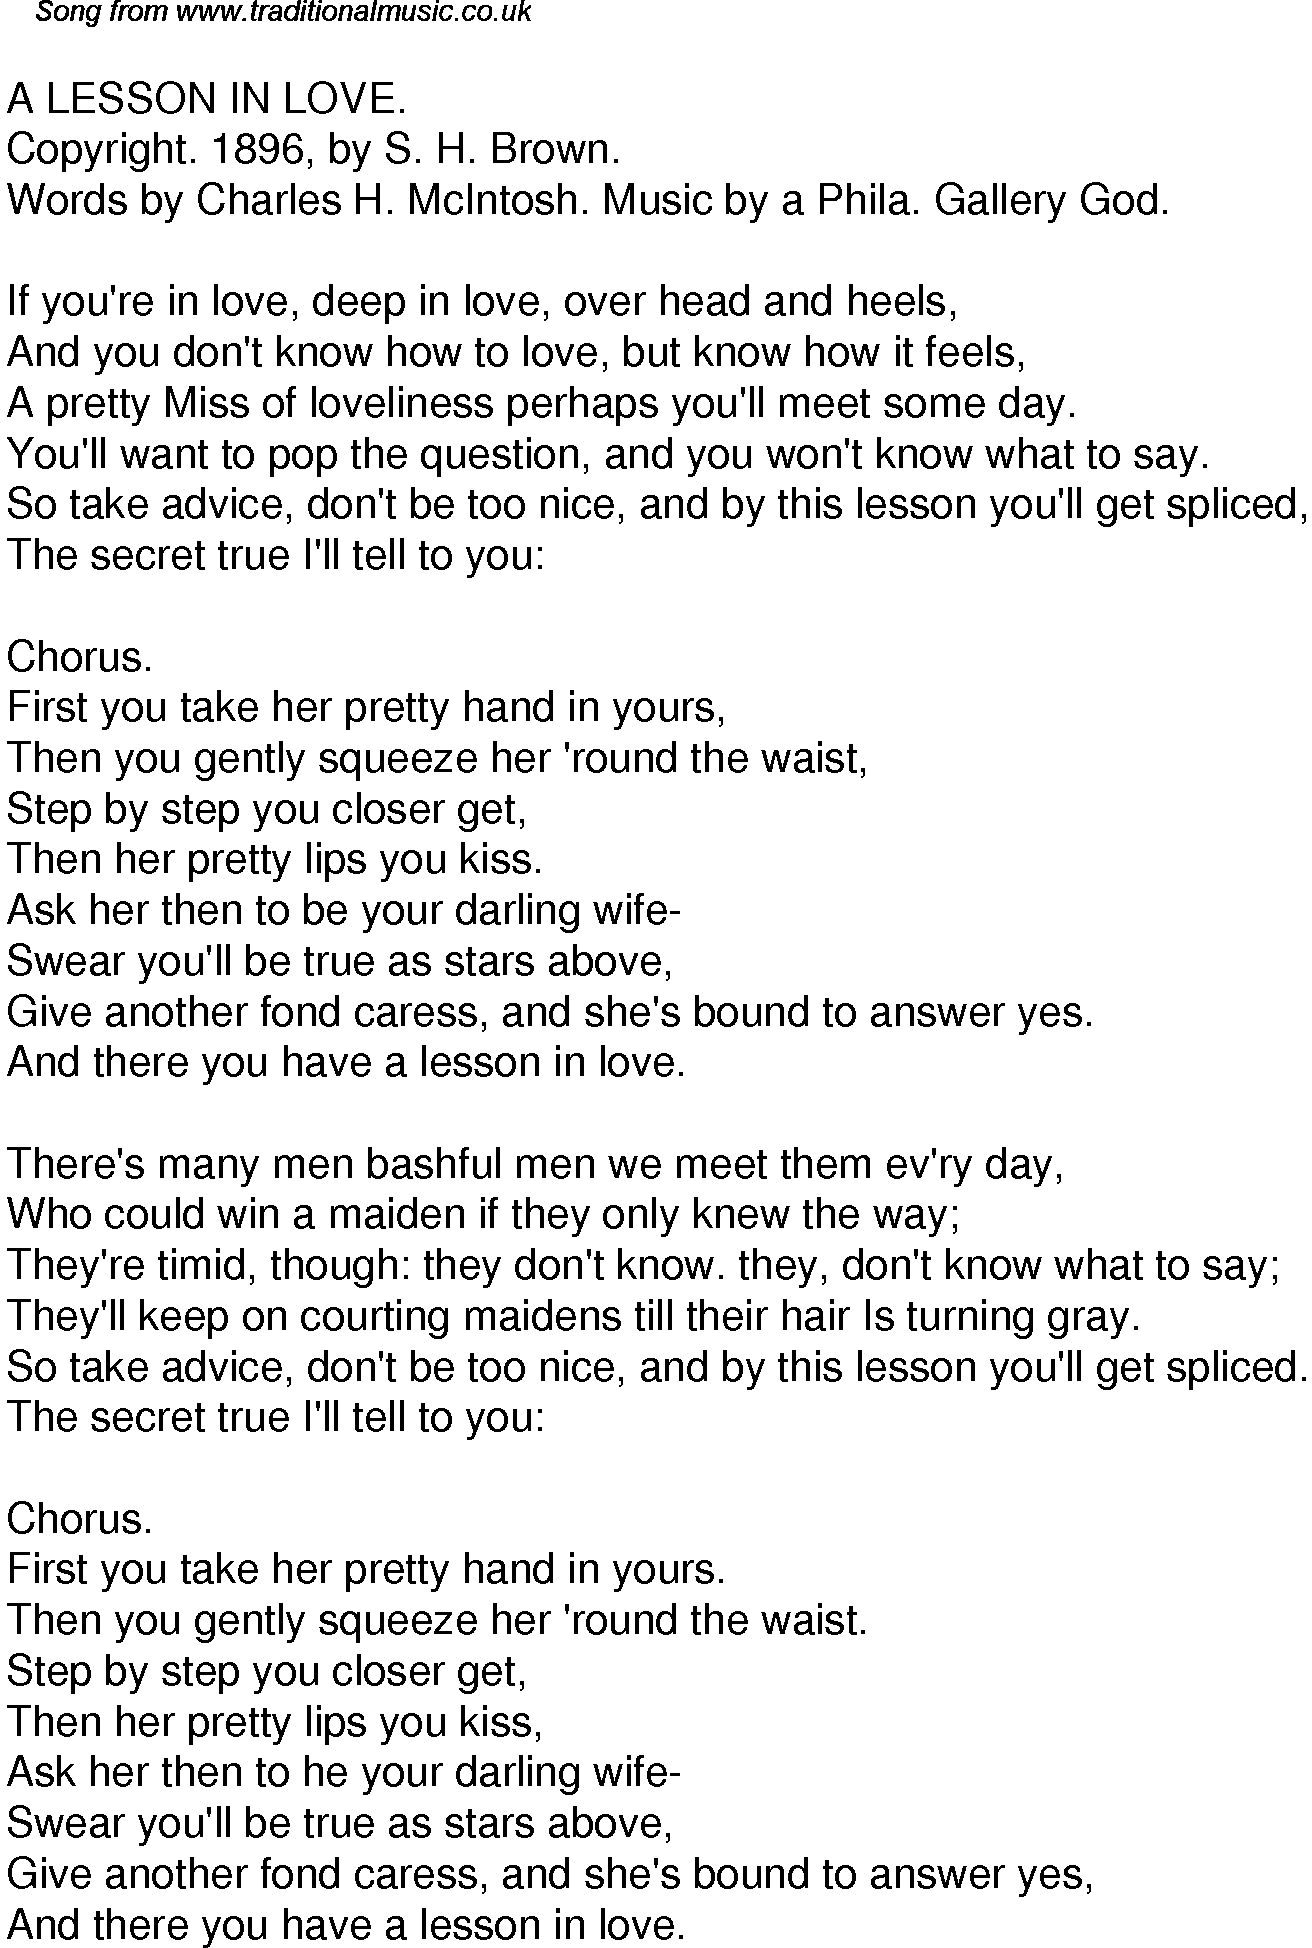 Old Time Song Lyrics for 58 A Lesson In Love